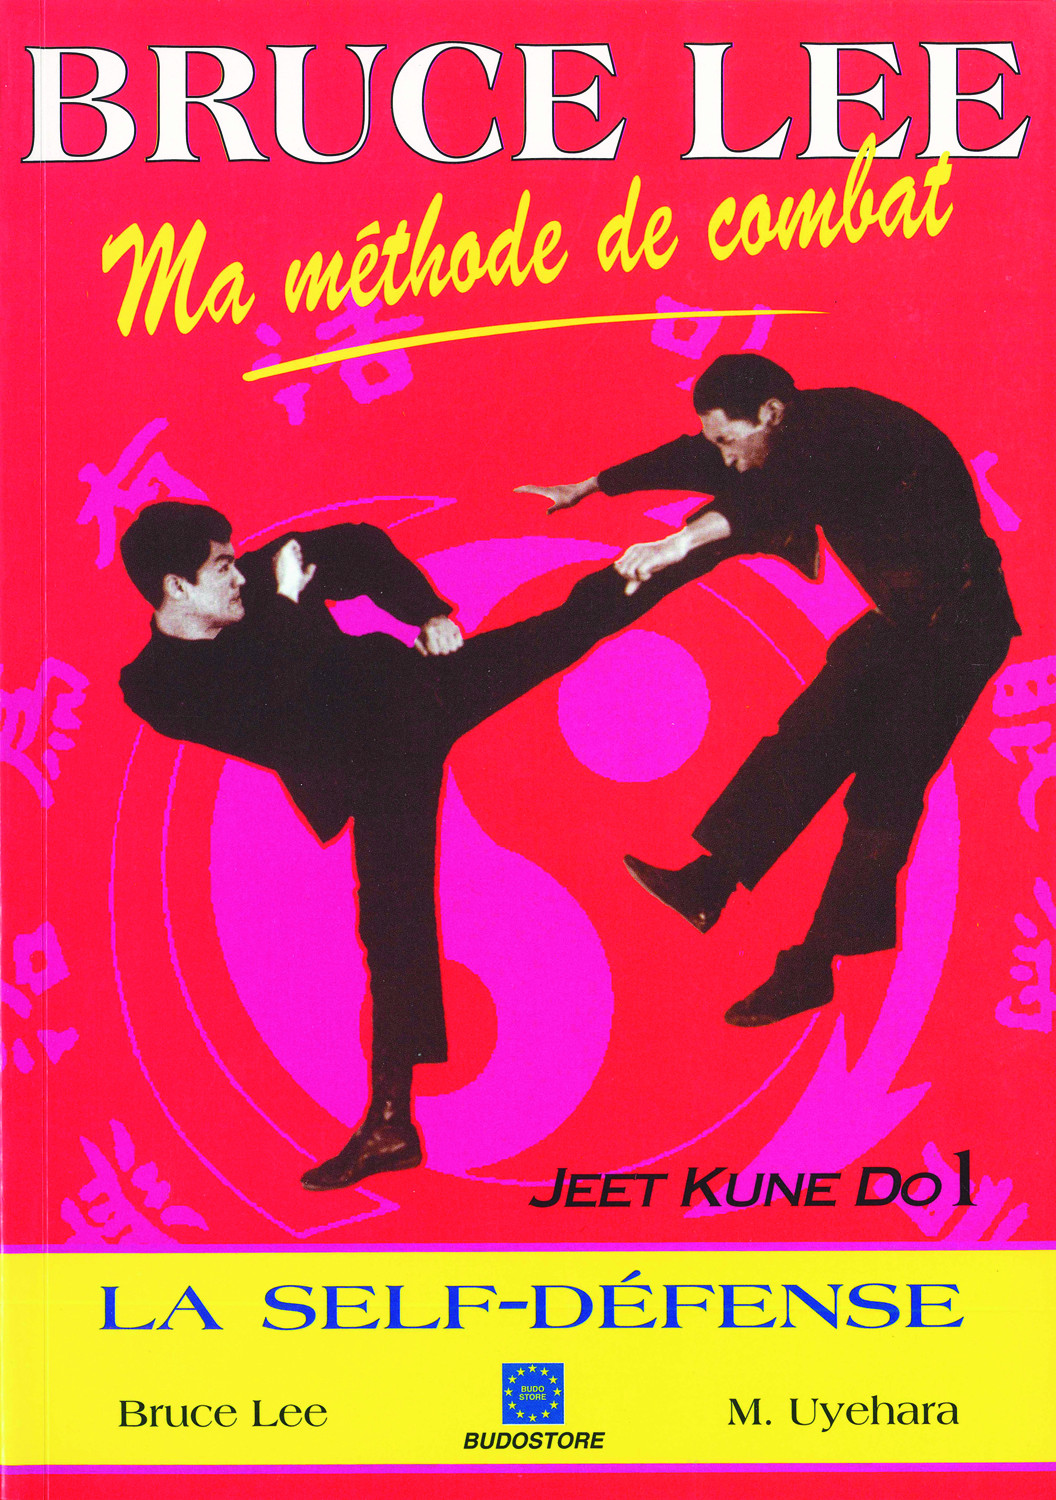 METHODE DE COMBAT 1, SELF-DEFENSE (MA)